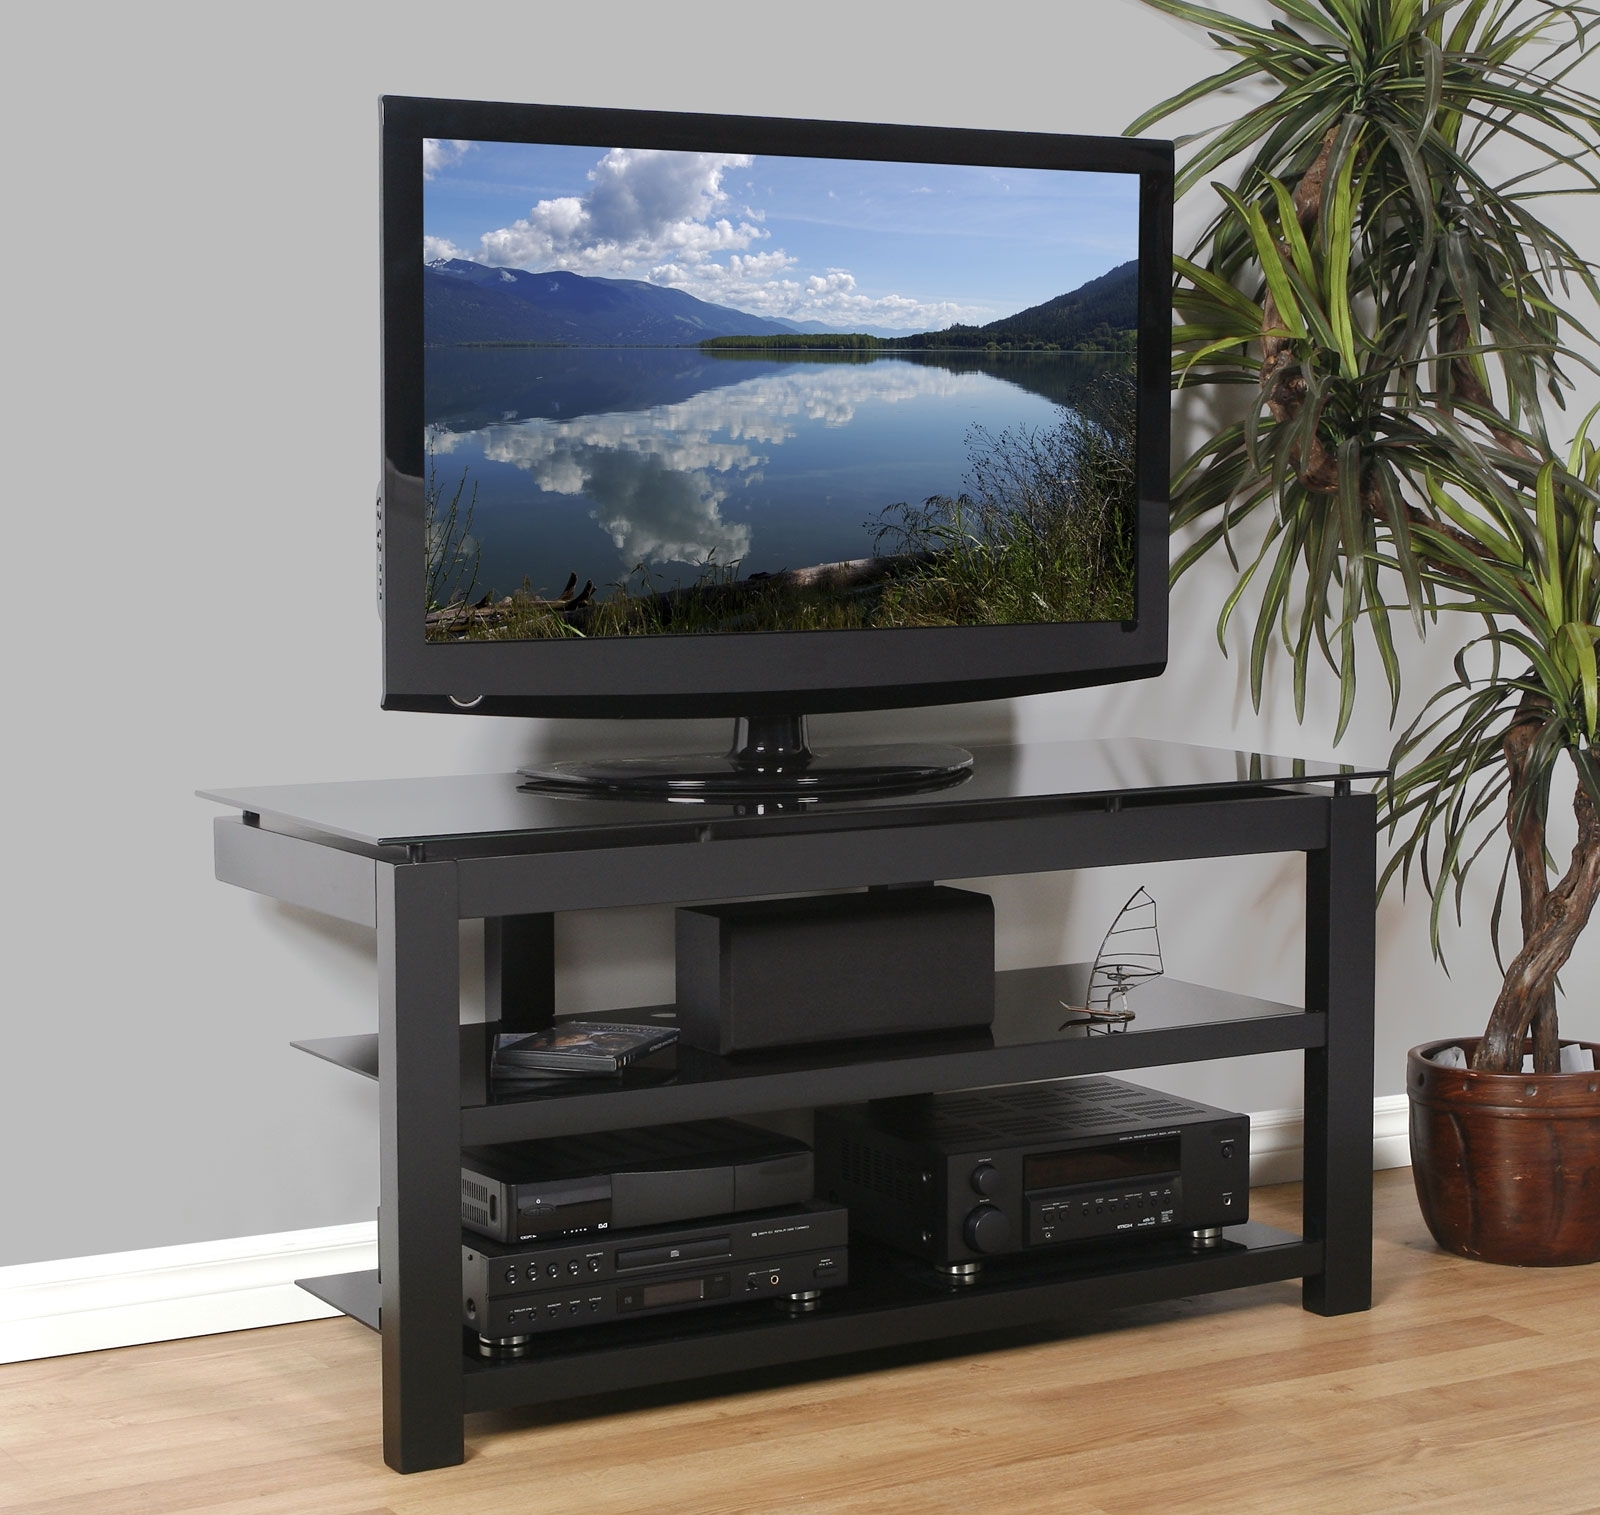 50 Inch Flat Screen Tv Stand – Natural Wood Veneers And Black Regarding Well Known Flat Screen Shelving (Gallery 10 of 15)